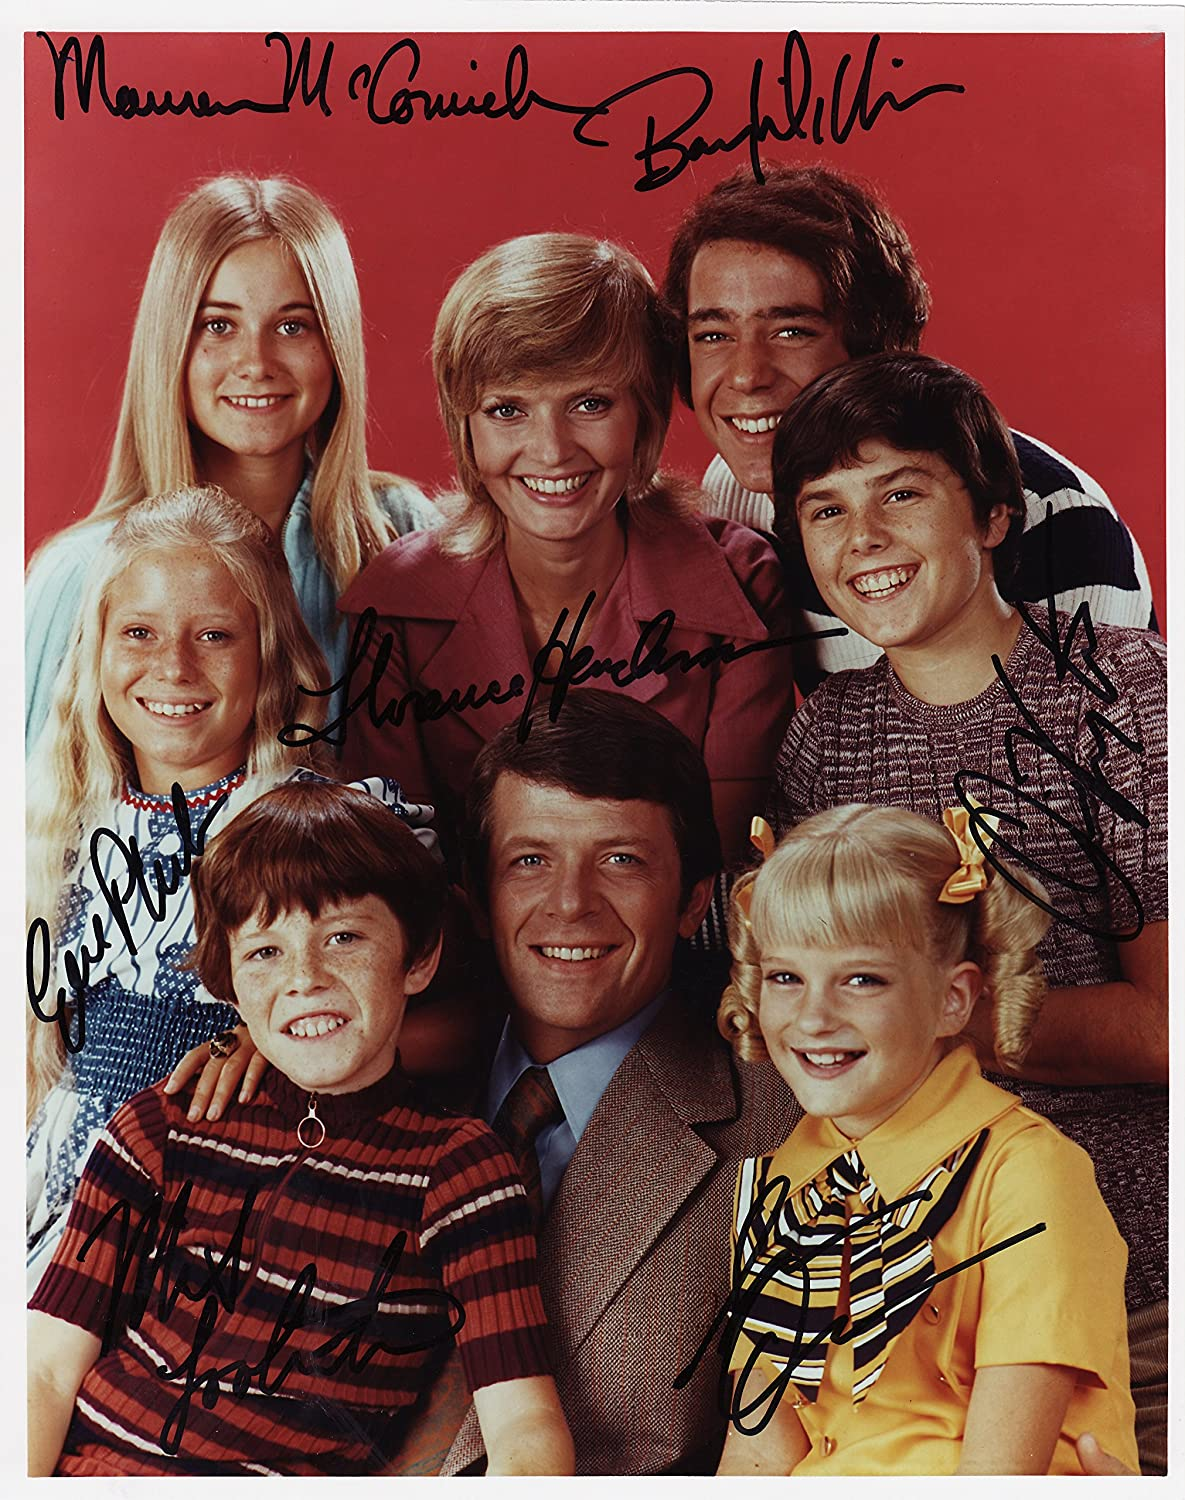 The Brady Bunch Florence Henderson Cast Signed Autographed 8 X 10 Reprint Photo - Mint Condition